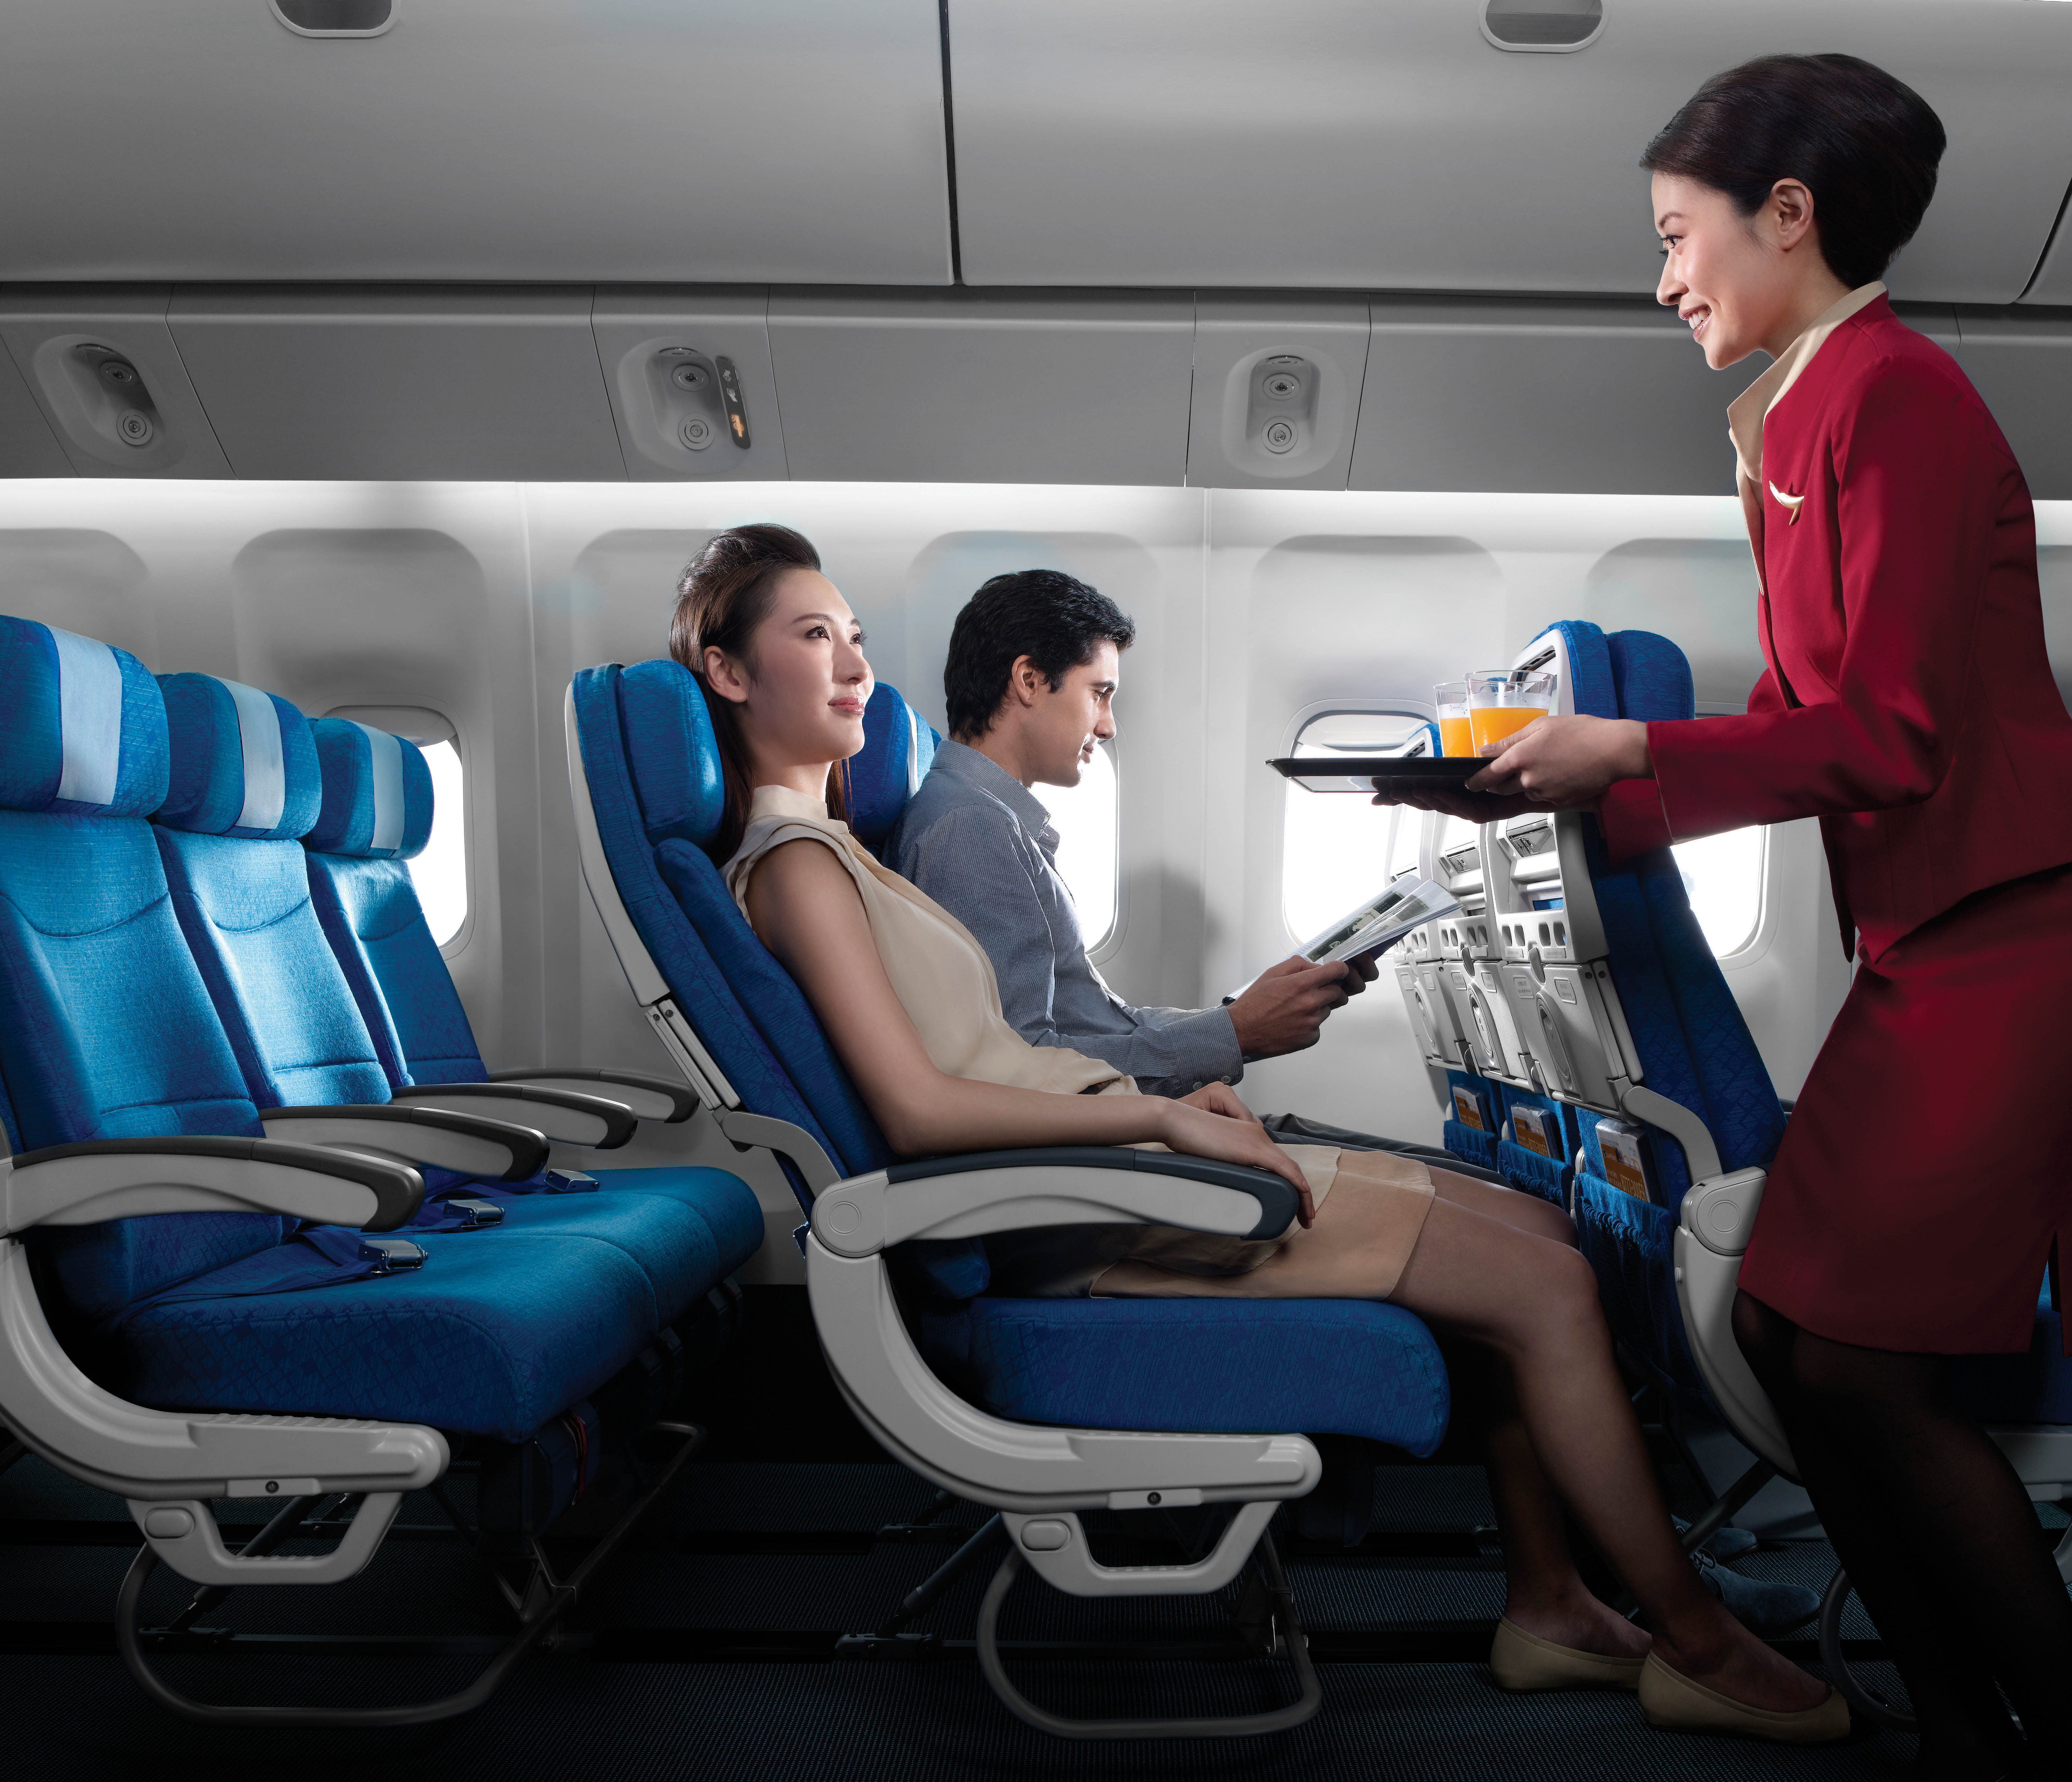 Citibank Promo: Exclusive savings on Cathay Pacific with Citibank March 2013